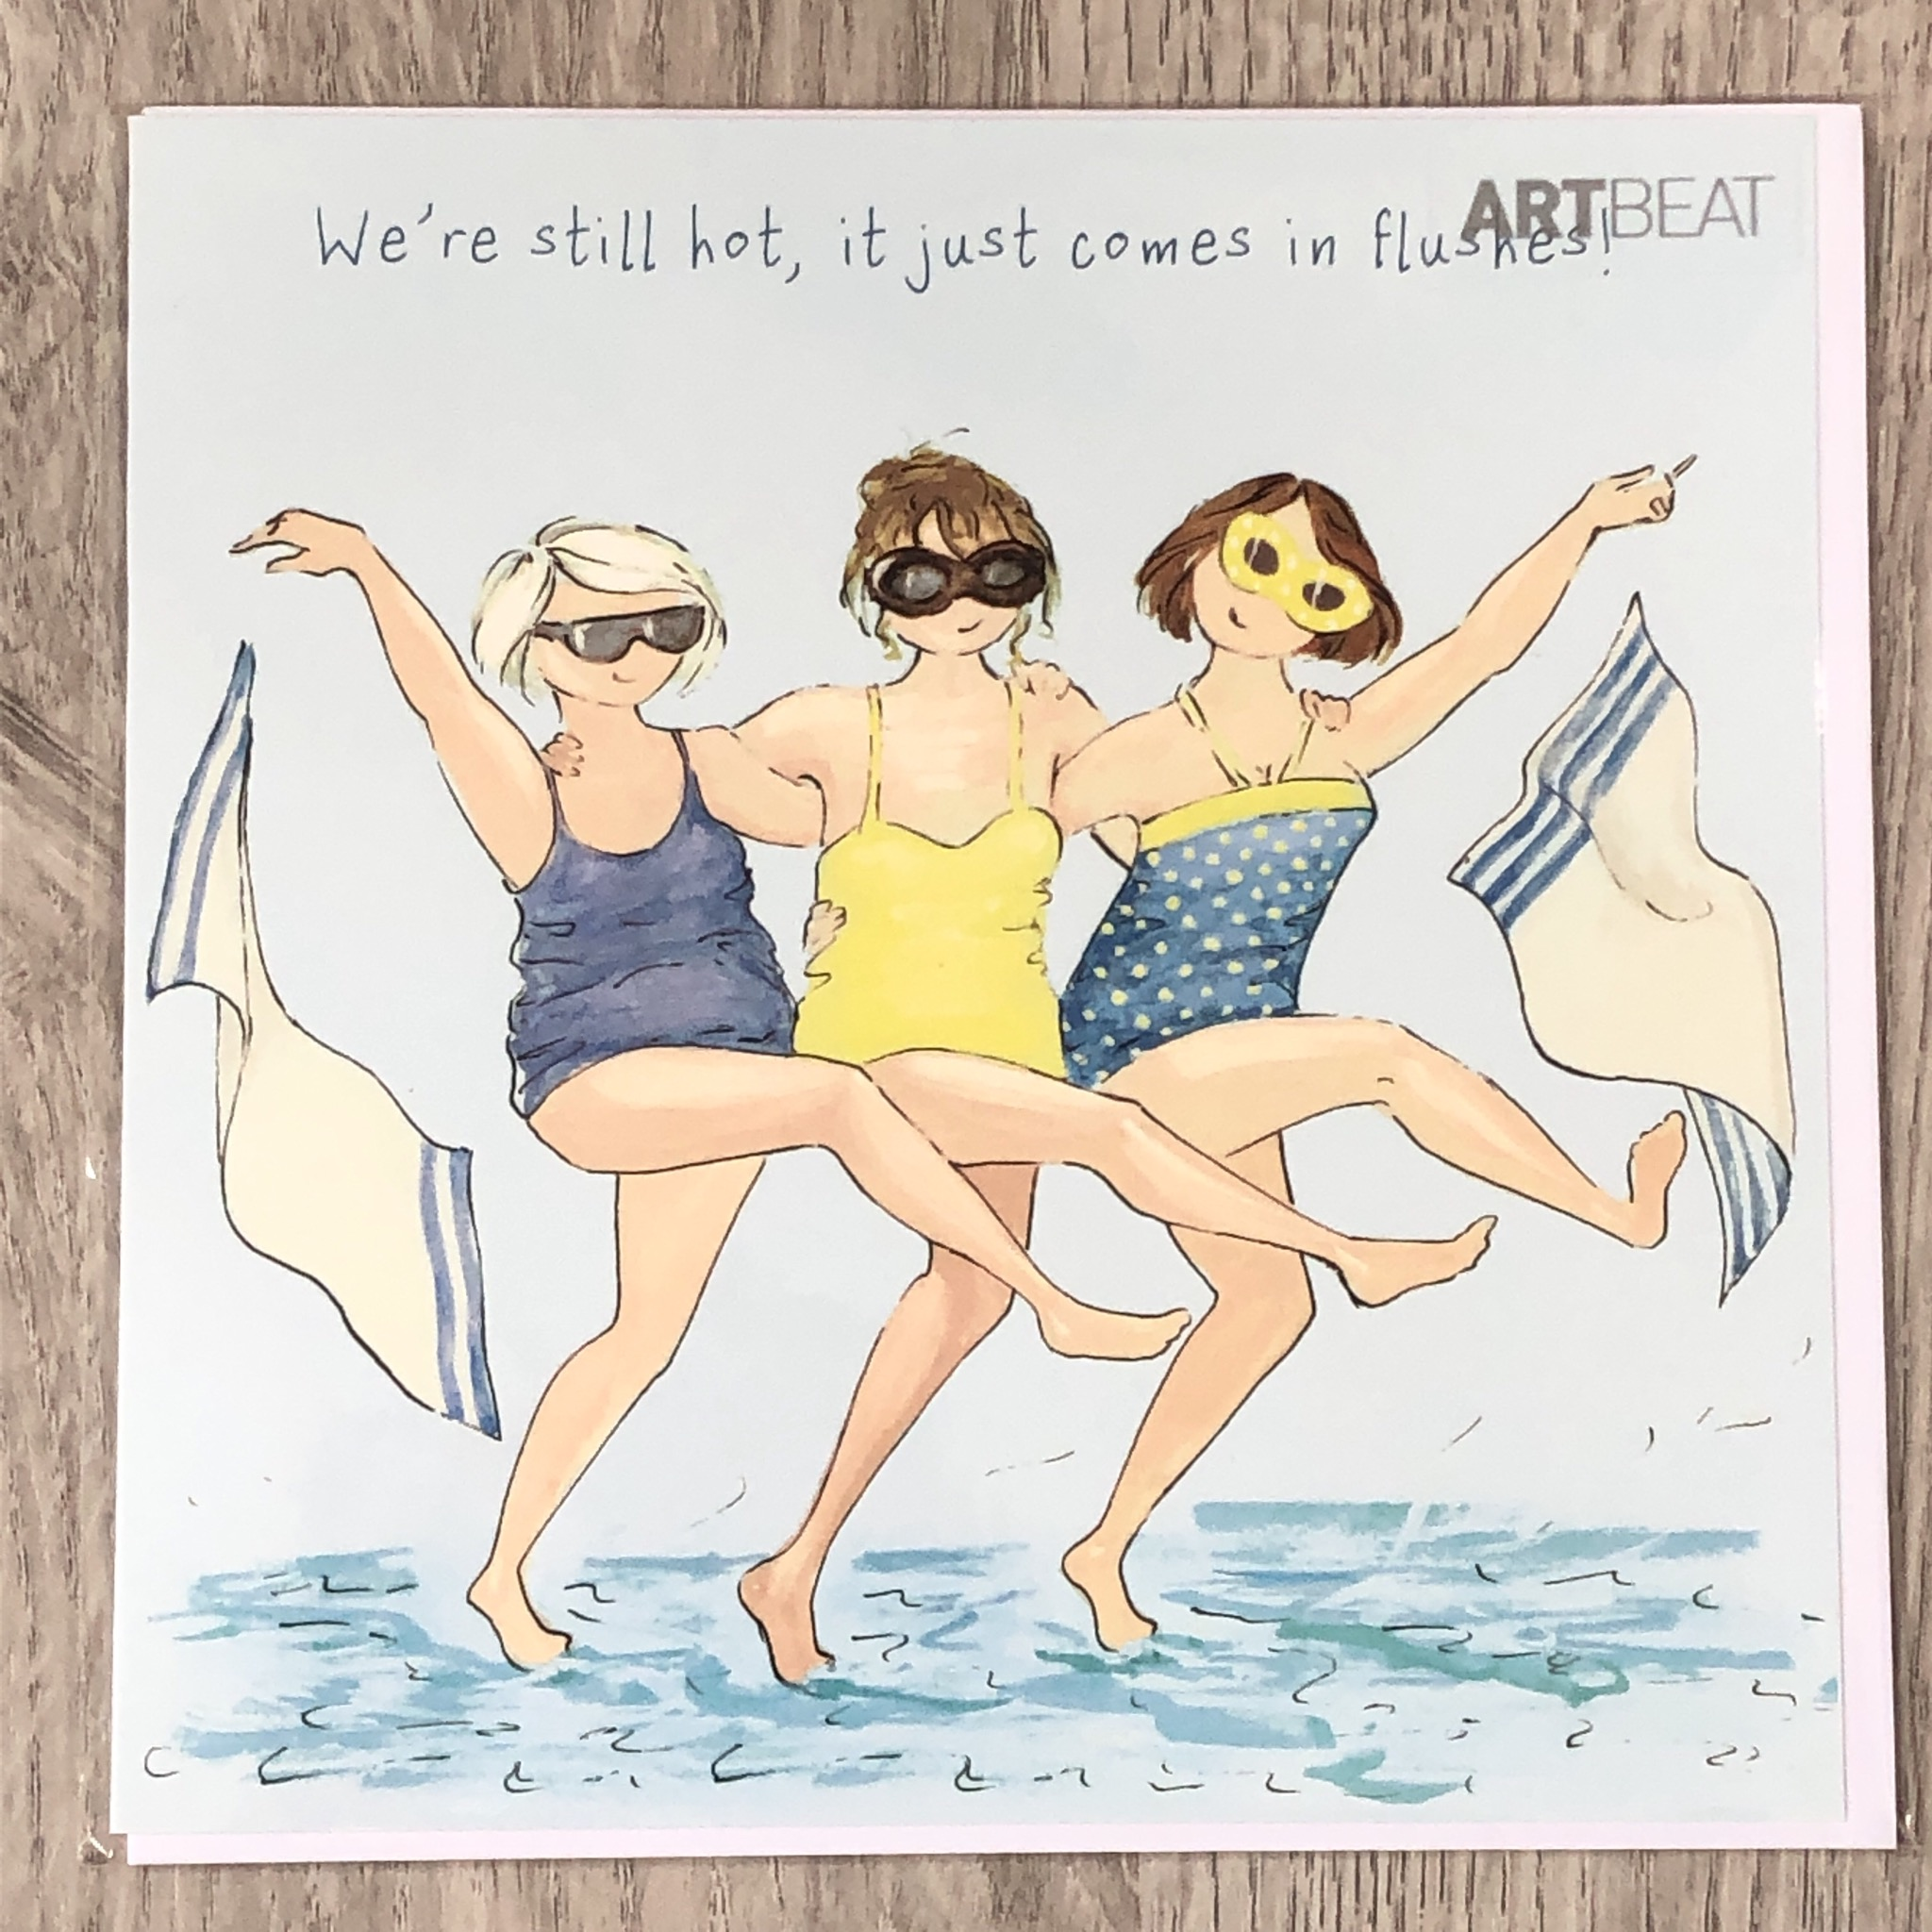 Birthday card- We're still hot, it just comes in flushes!